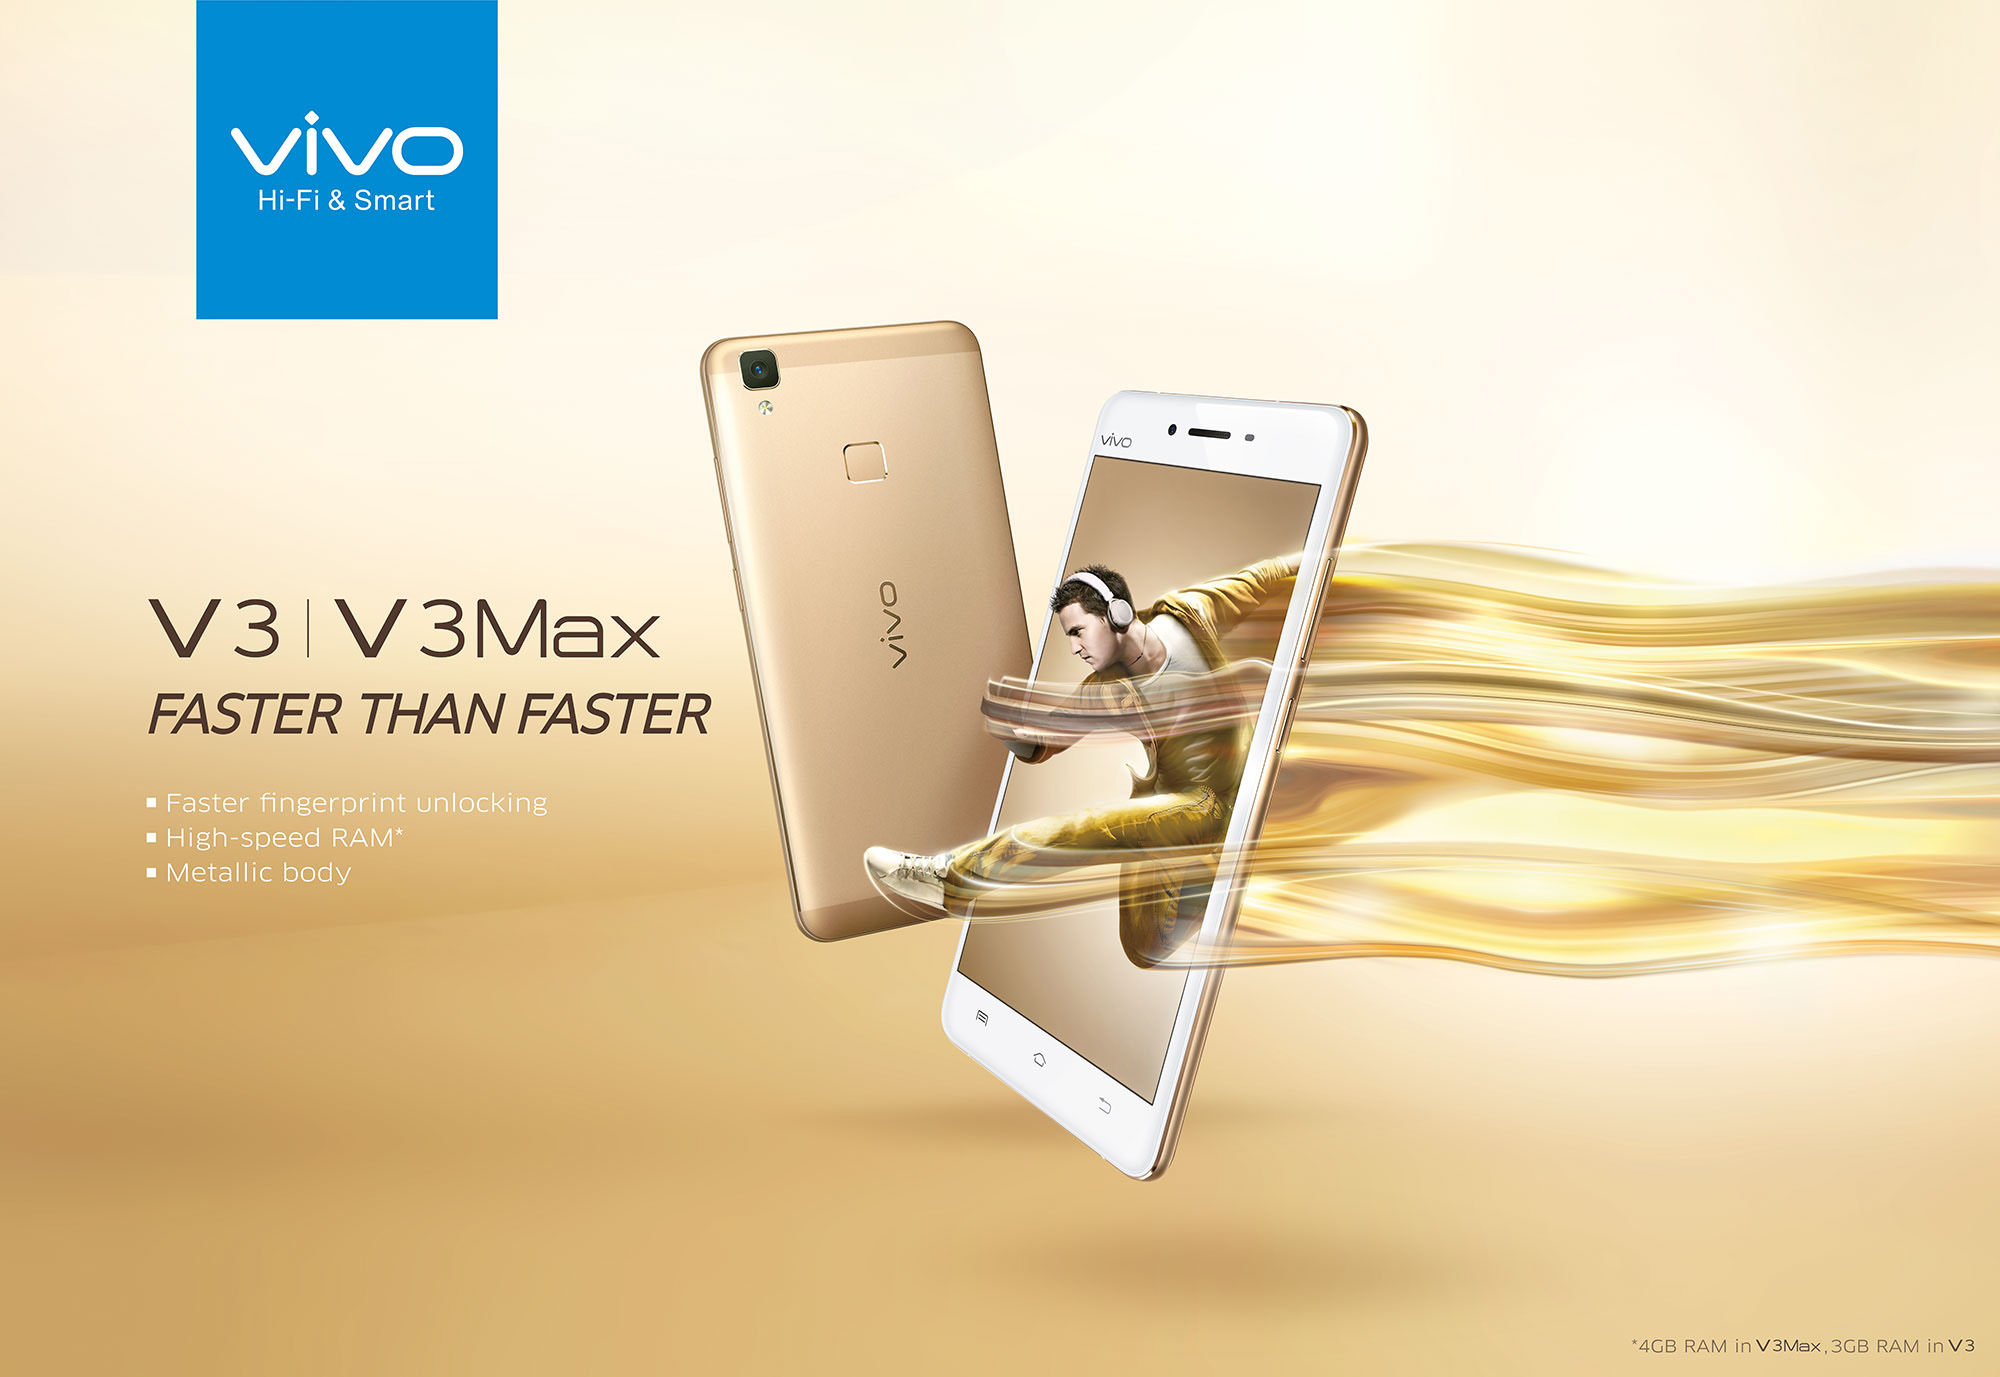 Vivo Launches Next Generation All-metal Smartphone X6